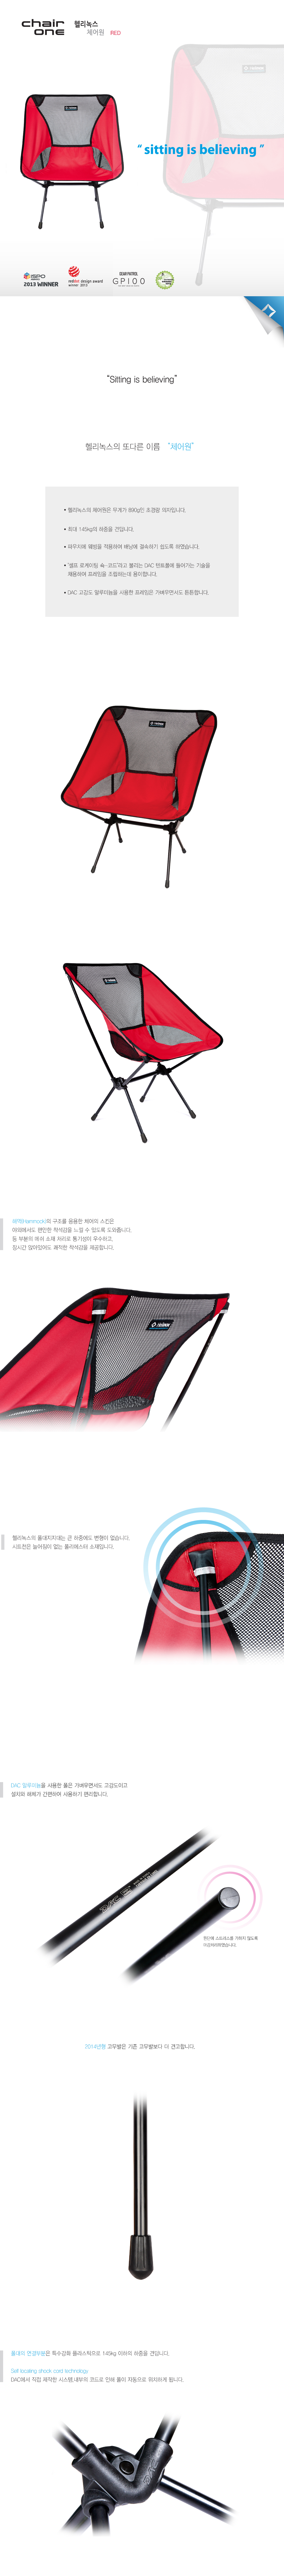 20160713-Helinox_chair-one_RED상품페이지.jpg